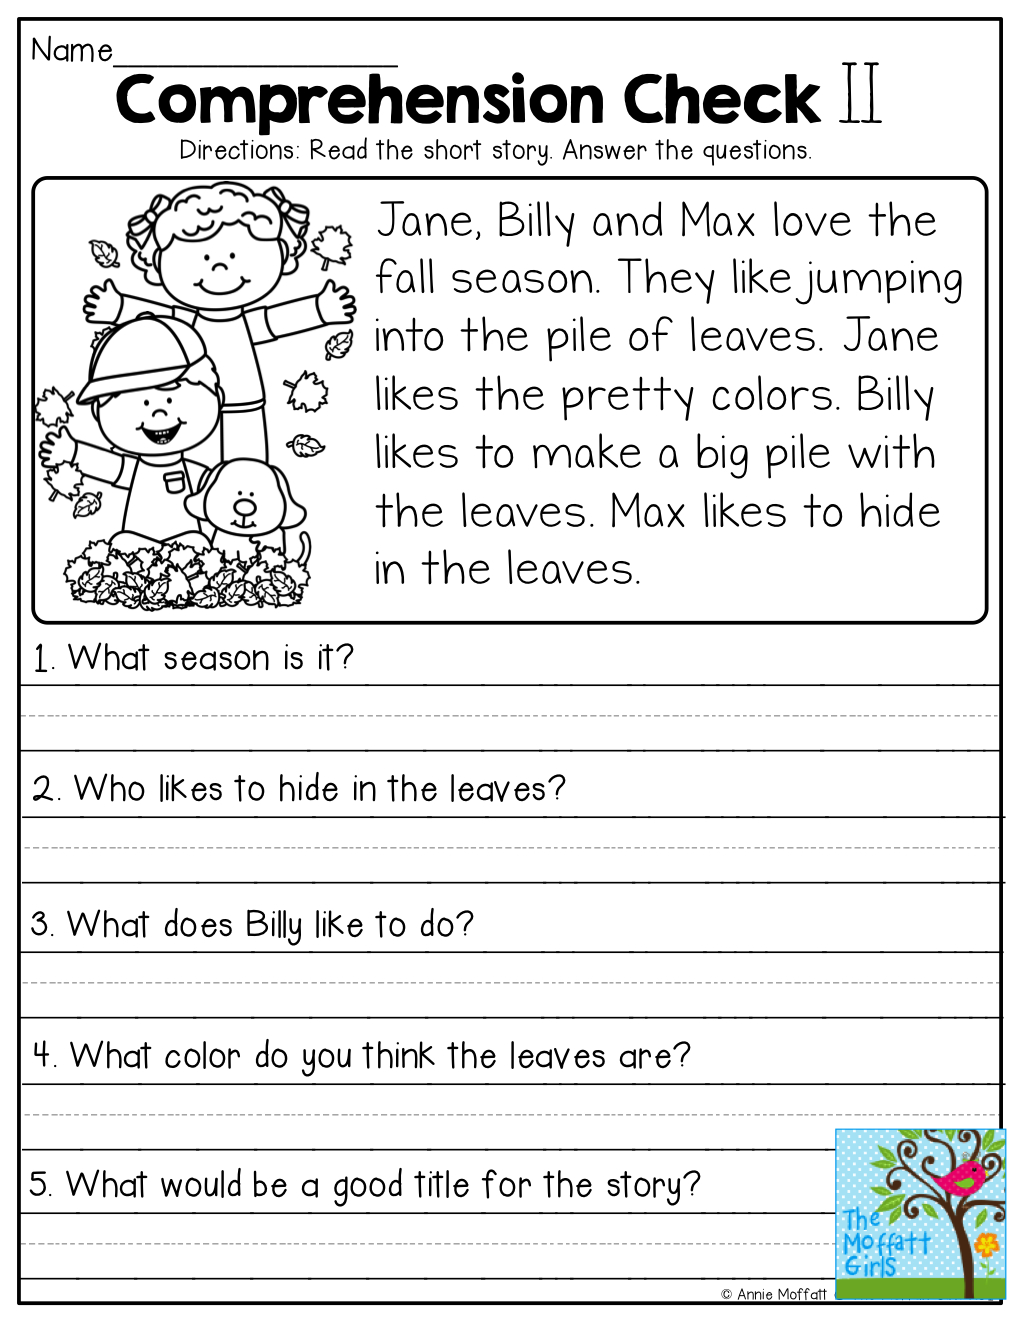 Comprehension Checks And So Many More Useful Printables | 1St Grade Reading Comprehension Worksheets Printable